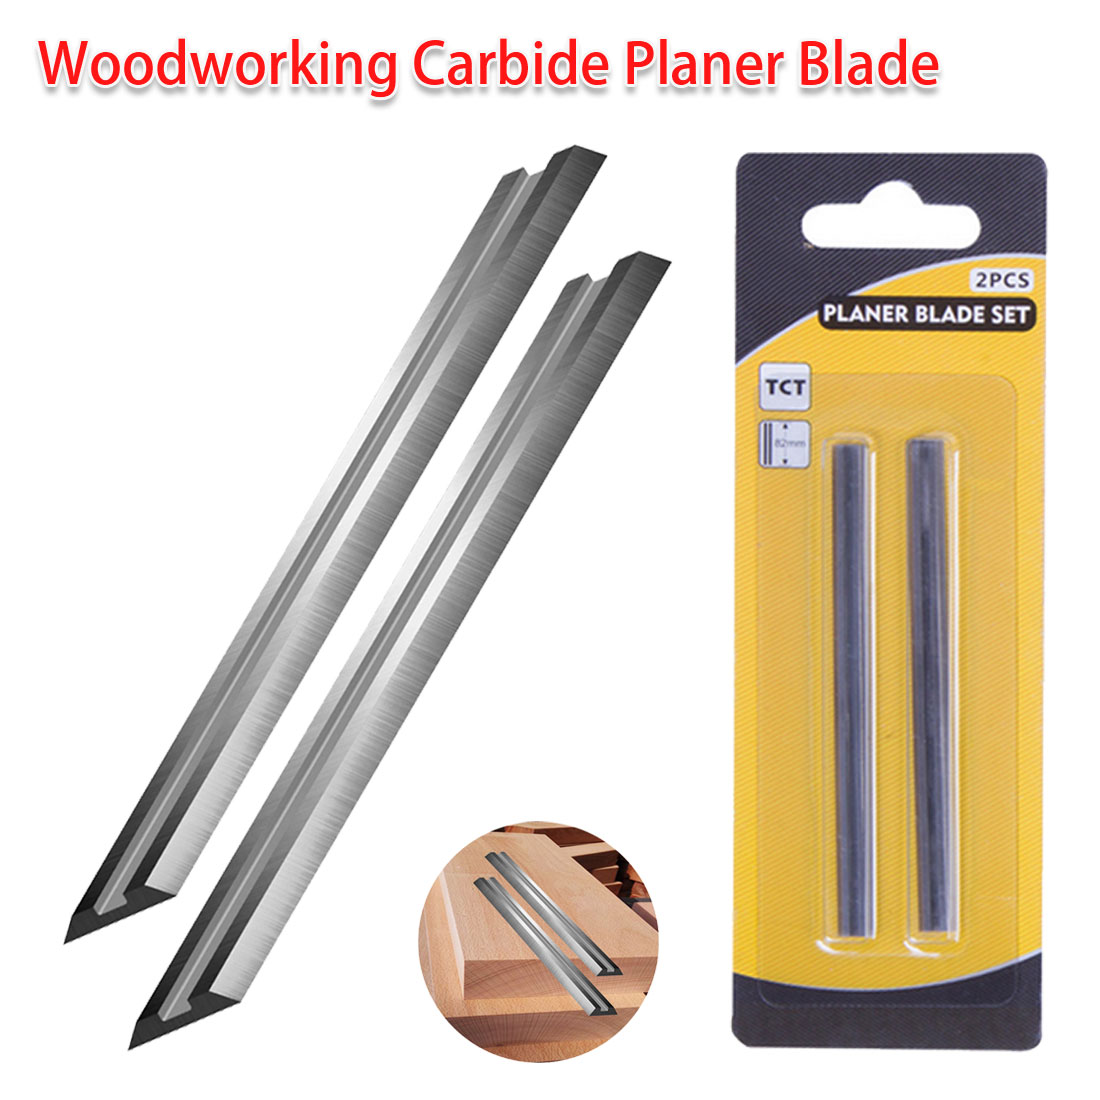 Portable Carbide Planer Blade Reversible Wood Planer Knife For Woodworking Machinery Parts Electric Planer Blade 82x5.5x1.2mm